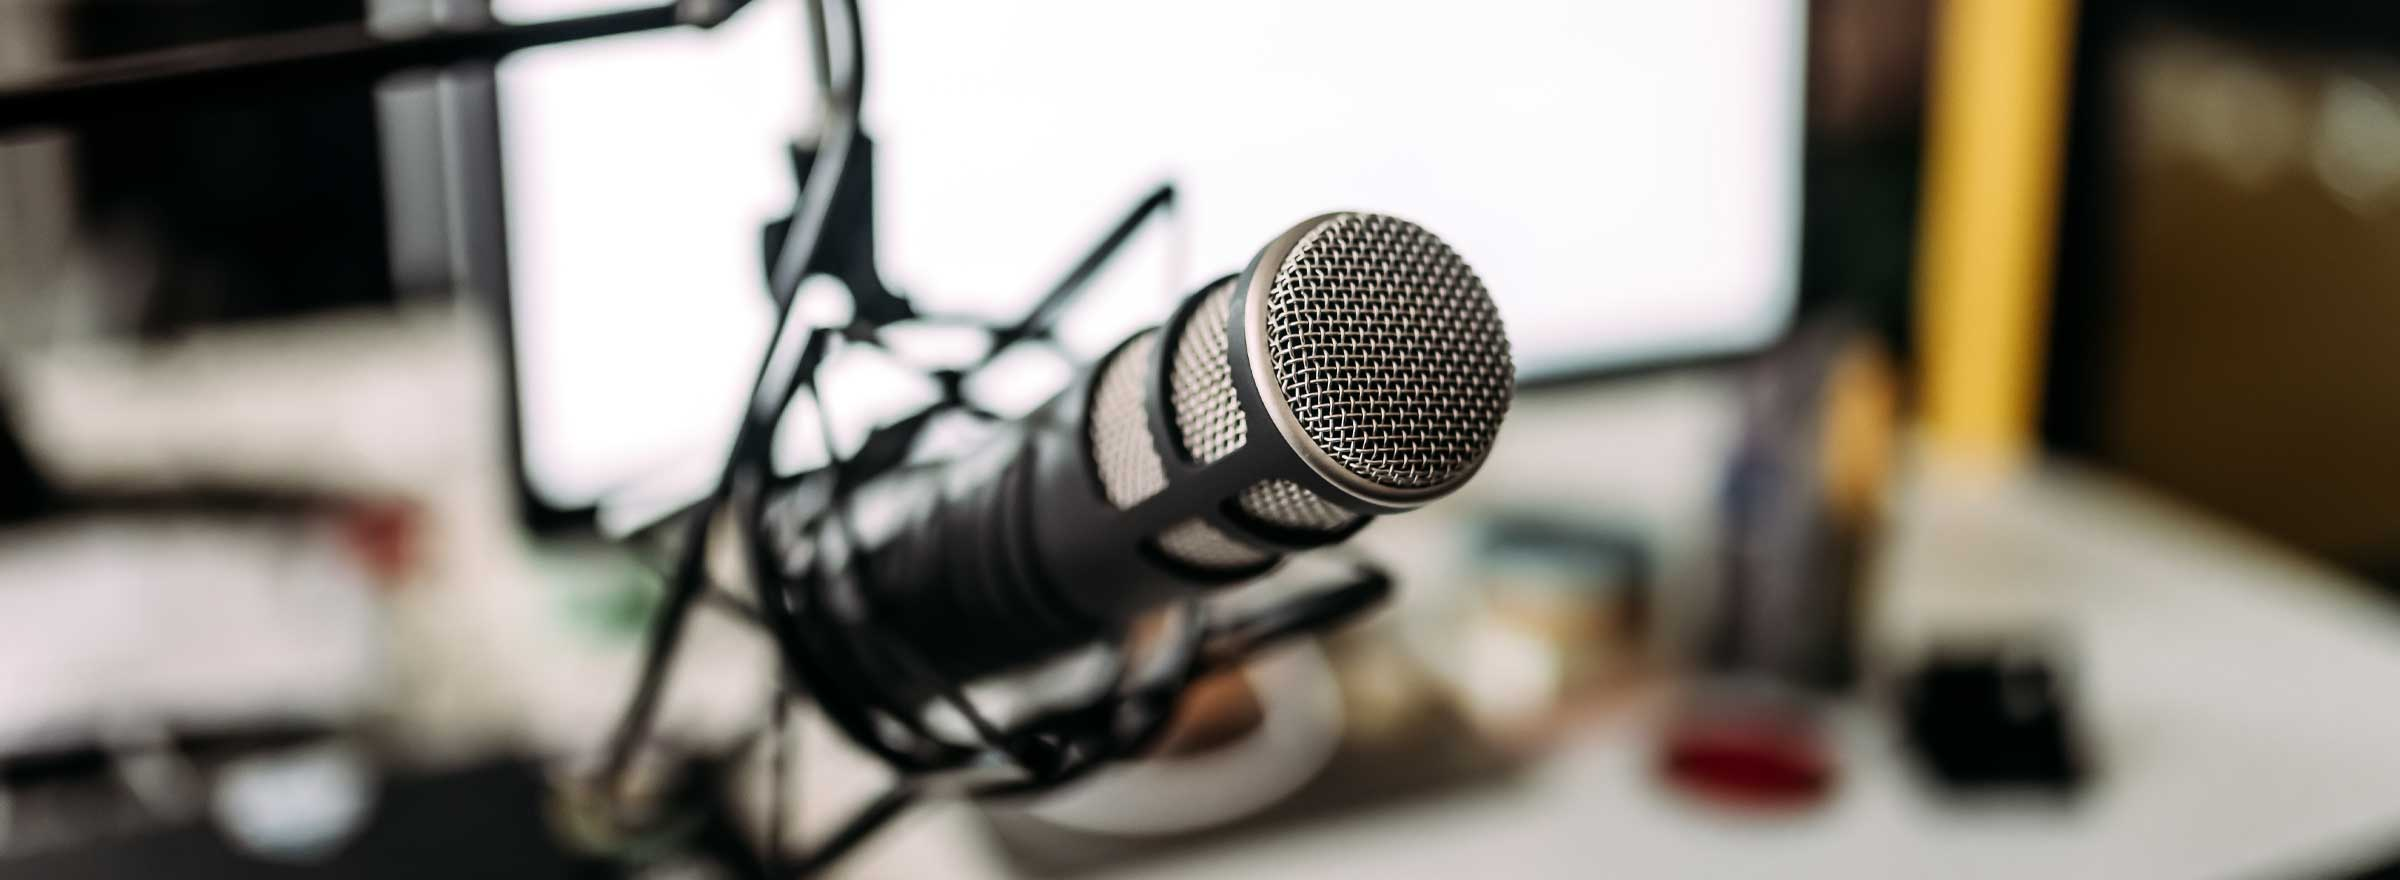 microphone in front of a blurred background